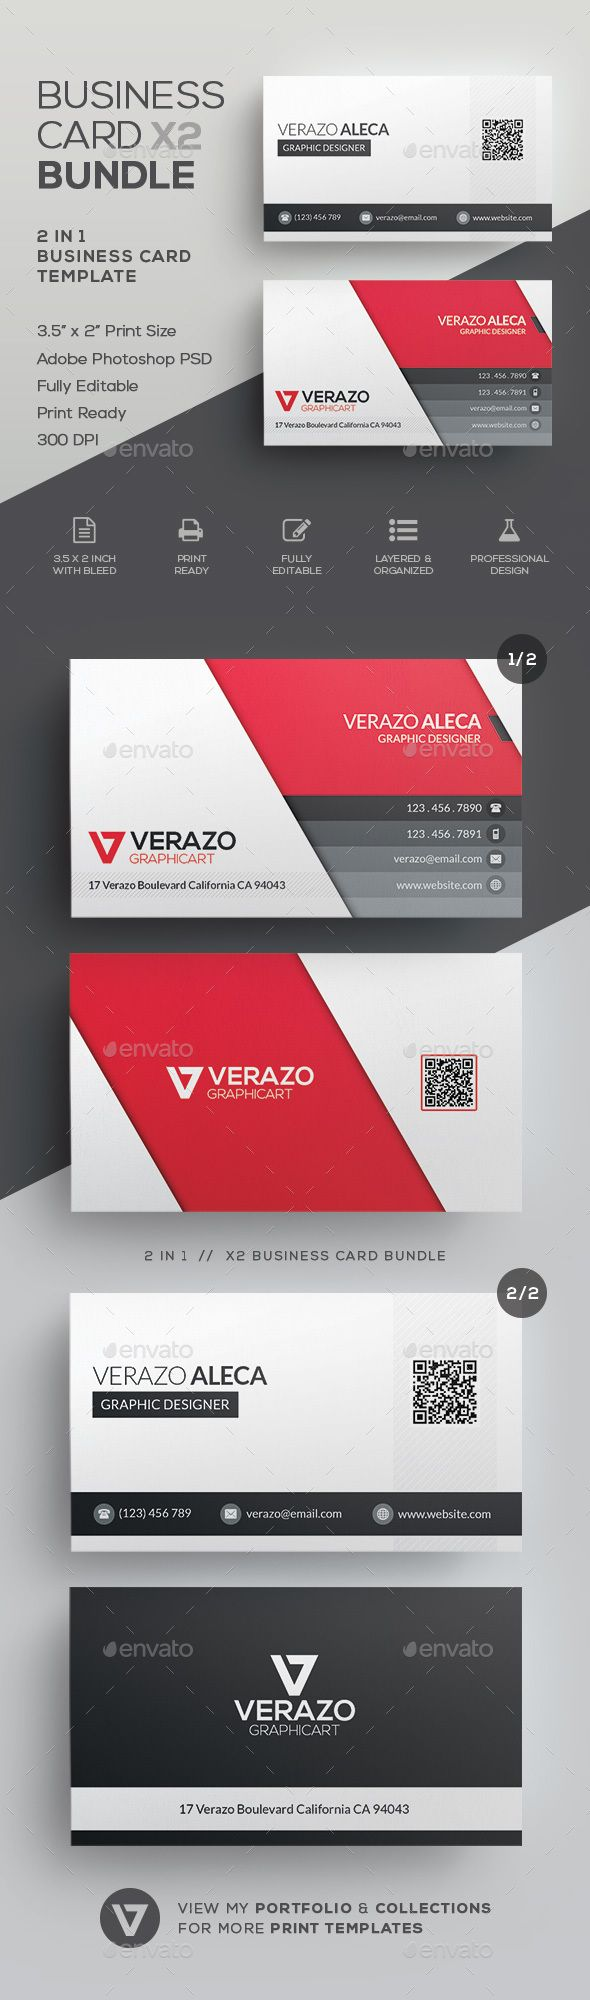 193 Best Business Card Images On Pinterest Business Cards